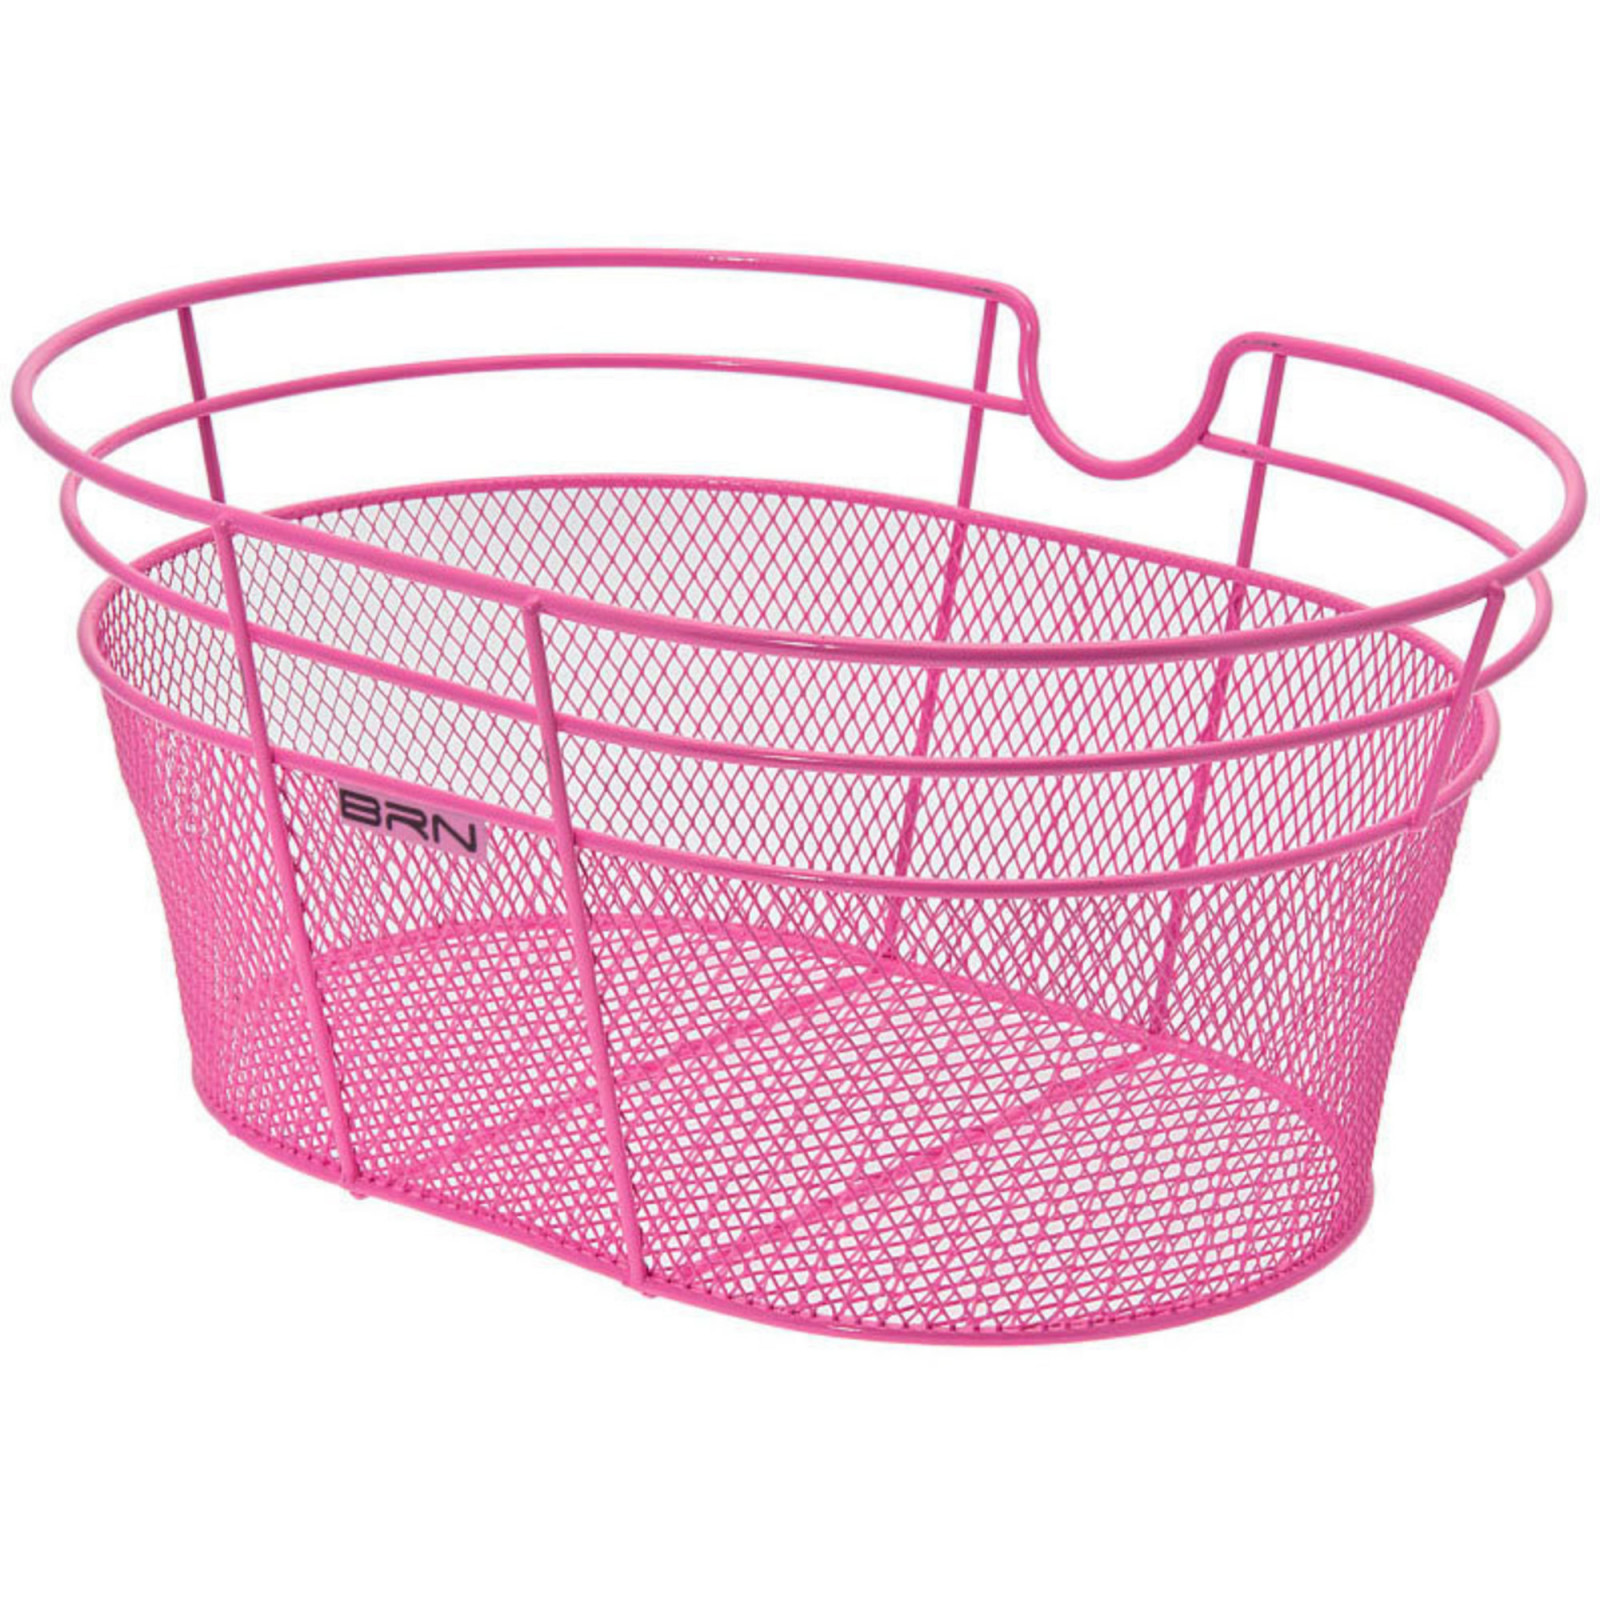 FANTASY METALLIC FRONT BICYCLE BASKET – IN COLOR PINK